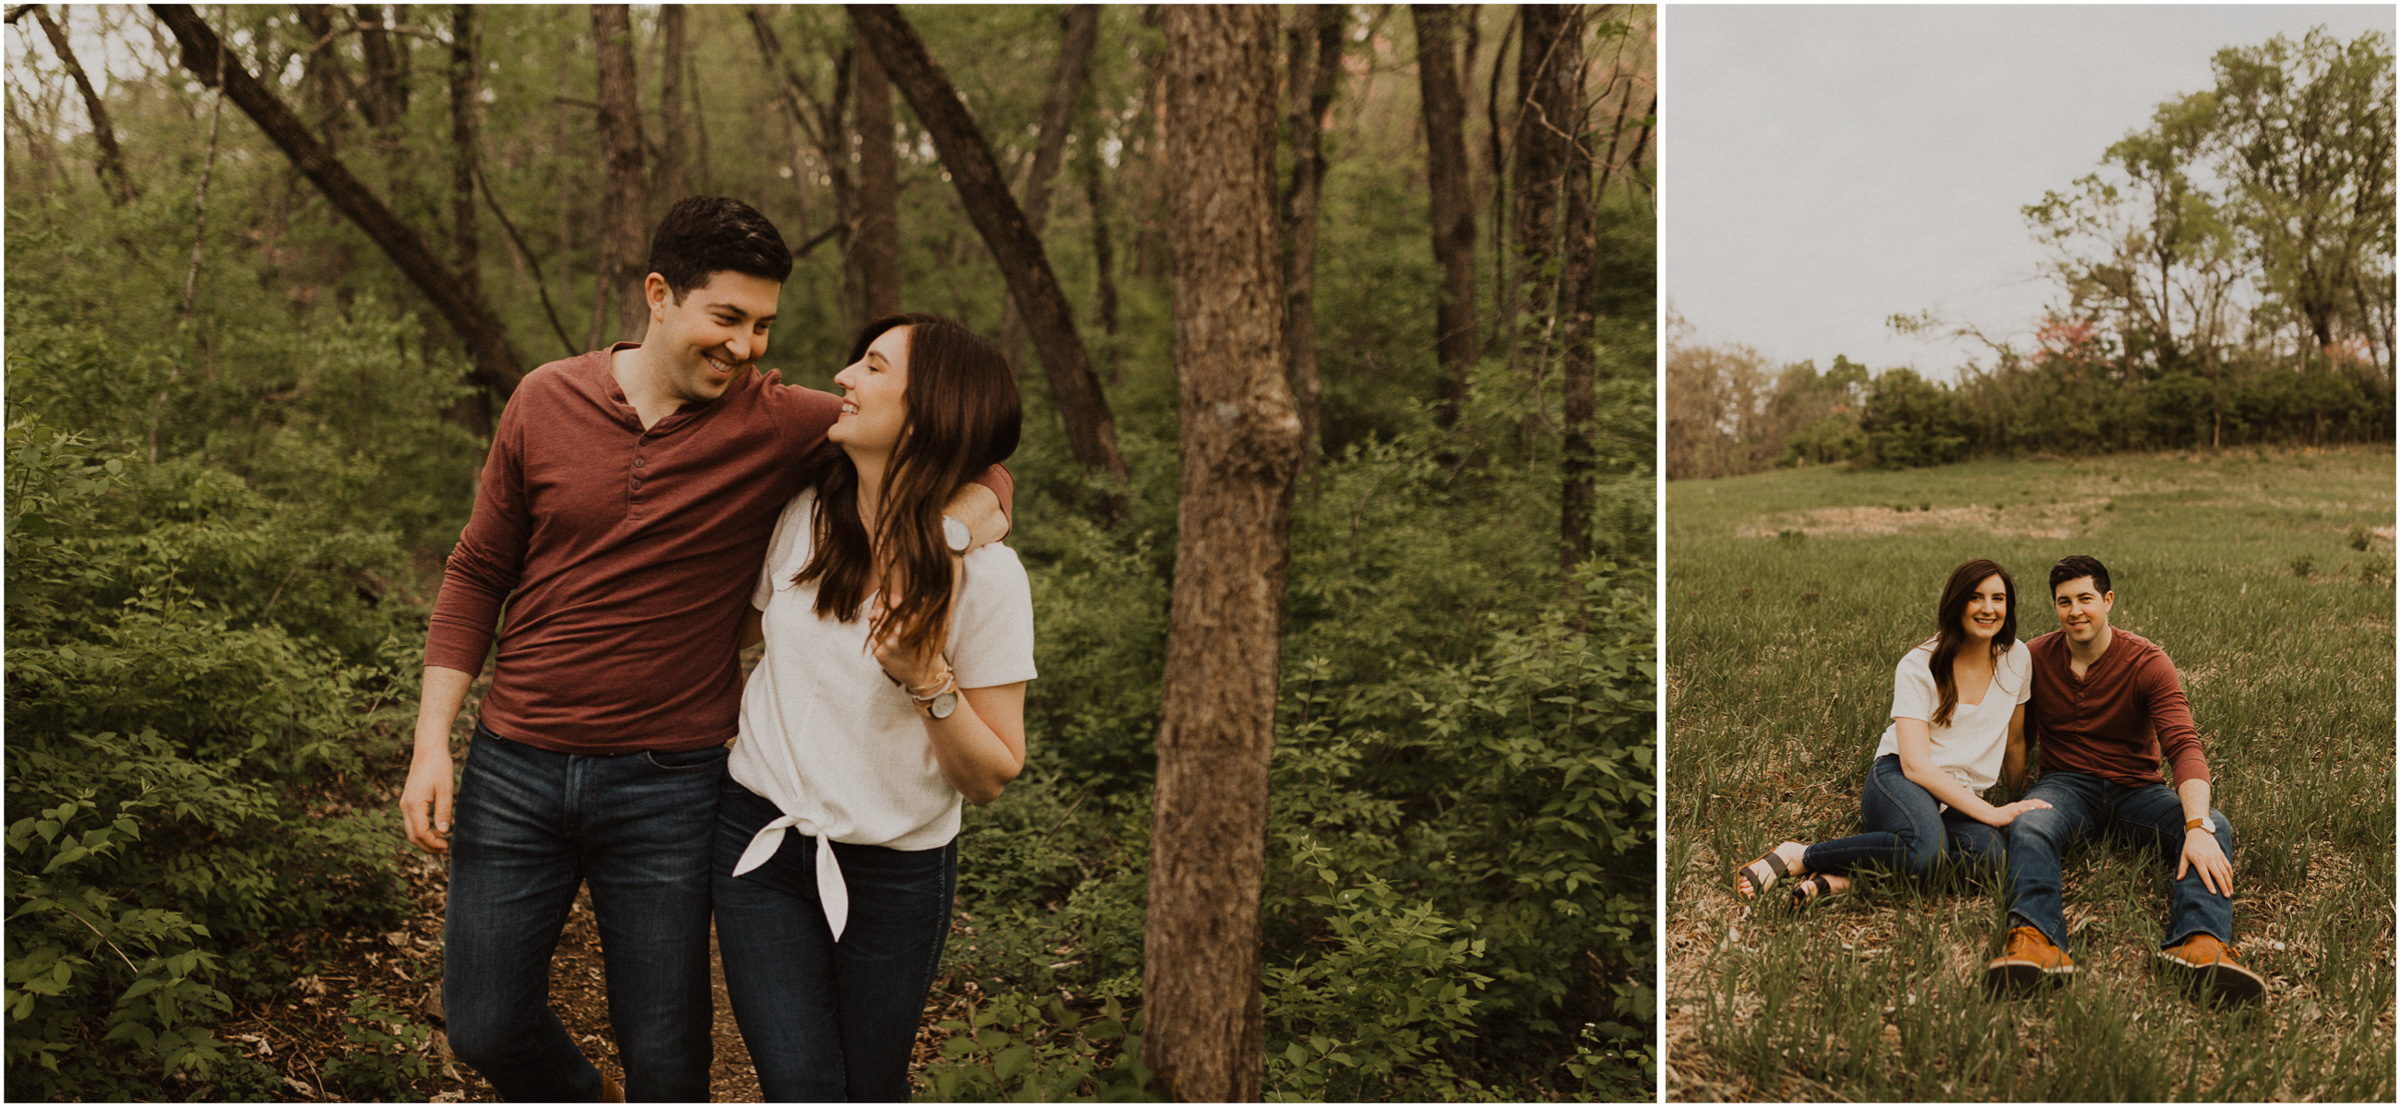 alyssa barletter photography shawnee mission park engagement session photographer spring fields-14.jpg